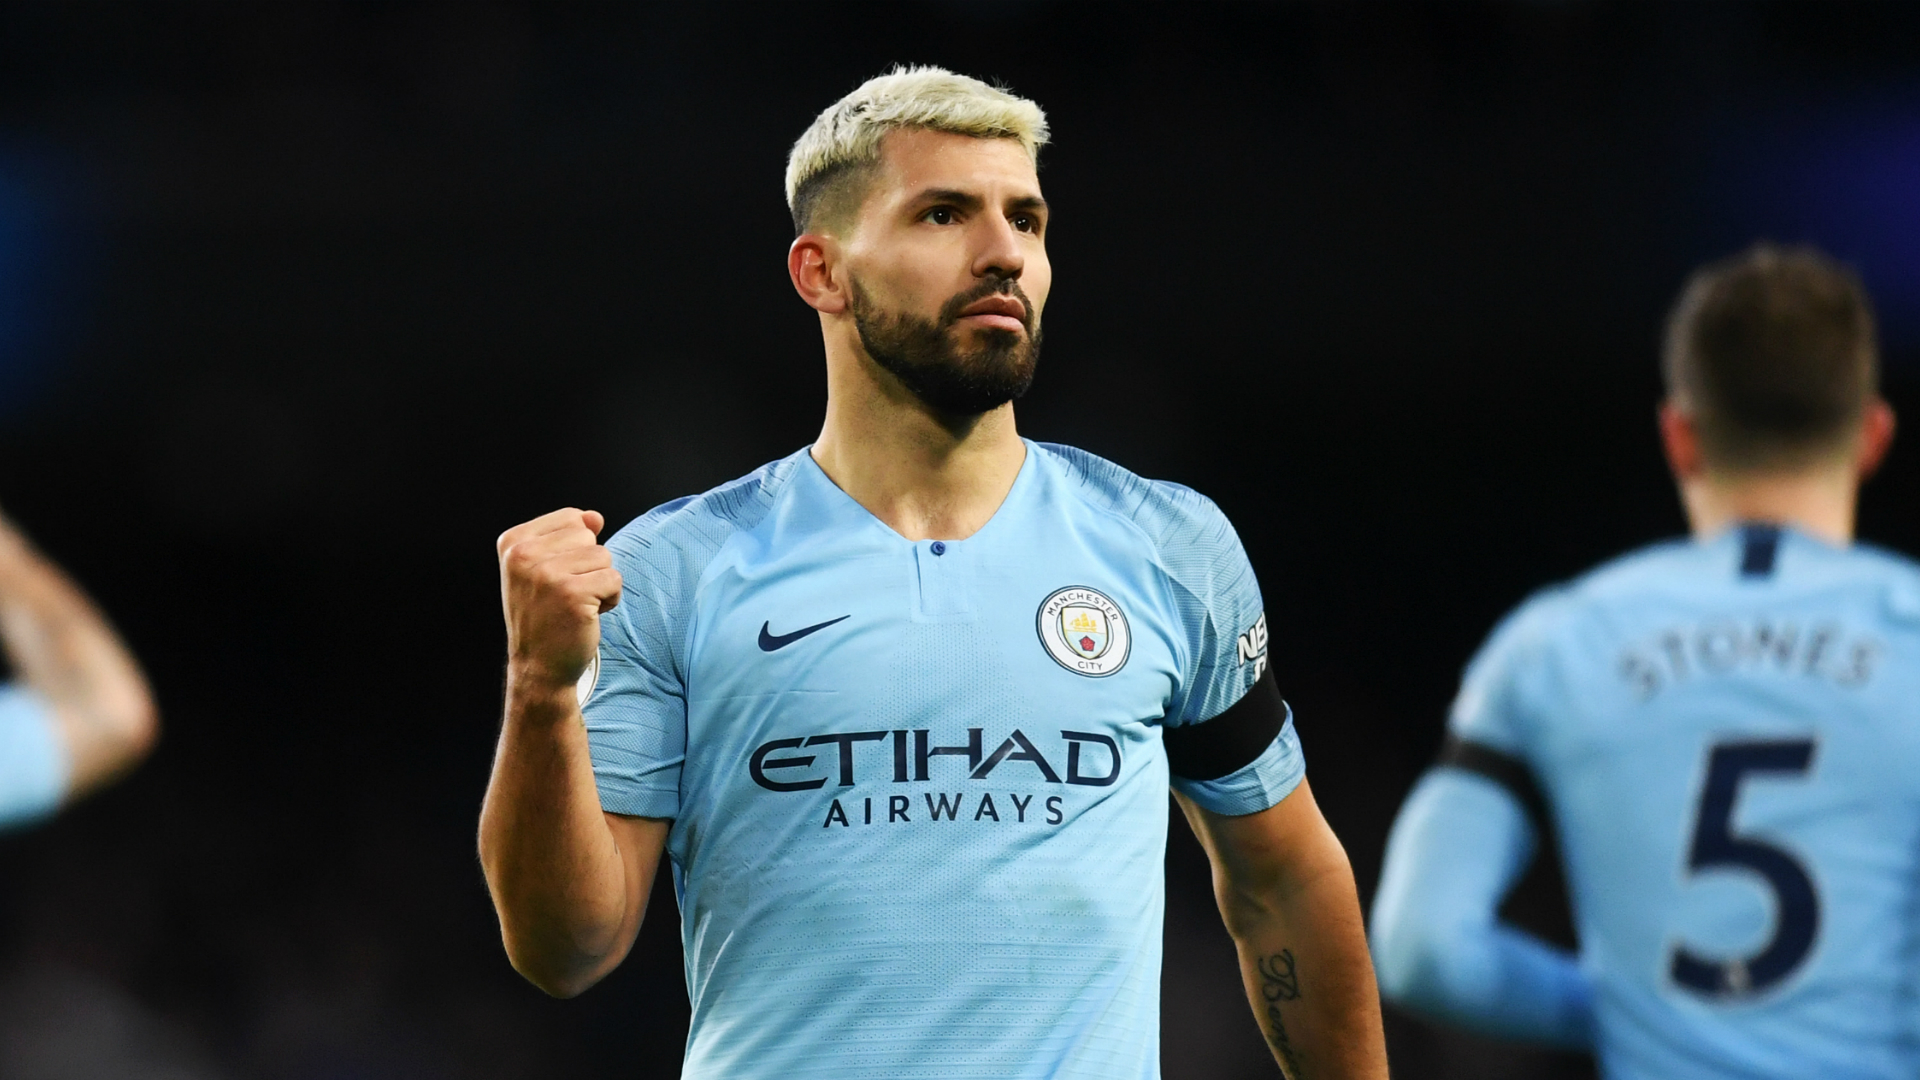 Sergio Aguero sets sights on record - Premier League 2019-20 opening weekend in Opta numbers